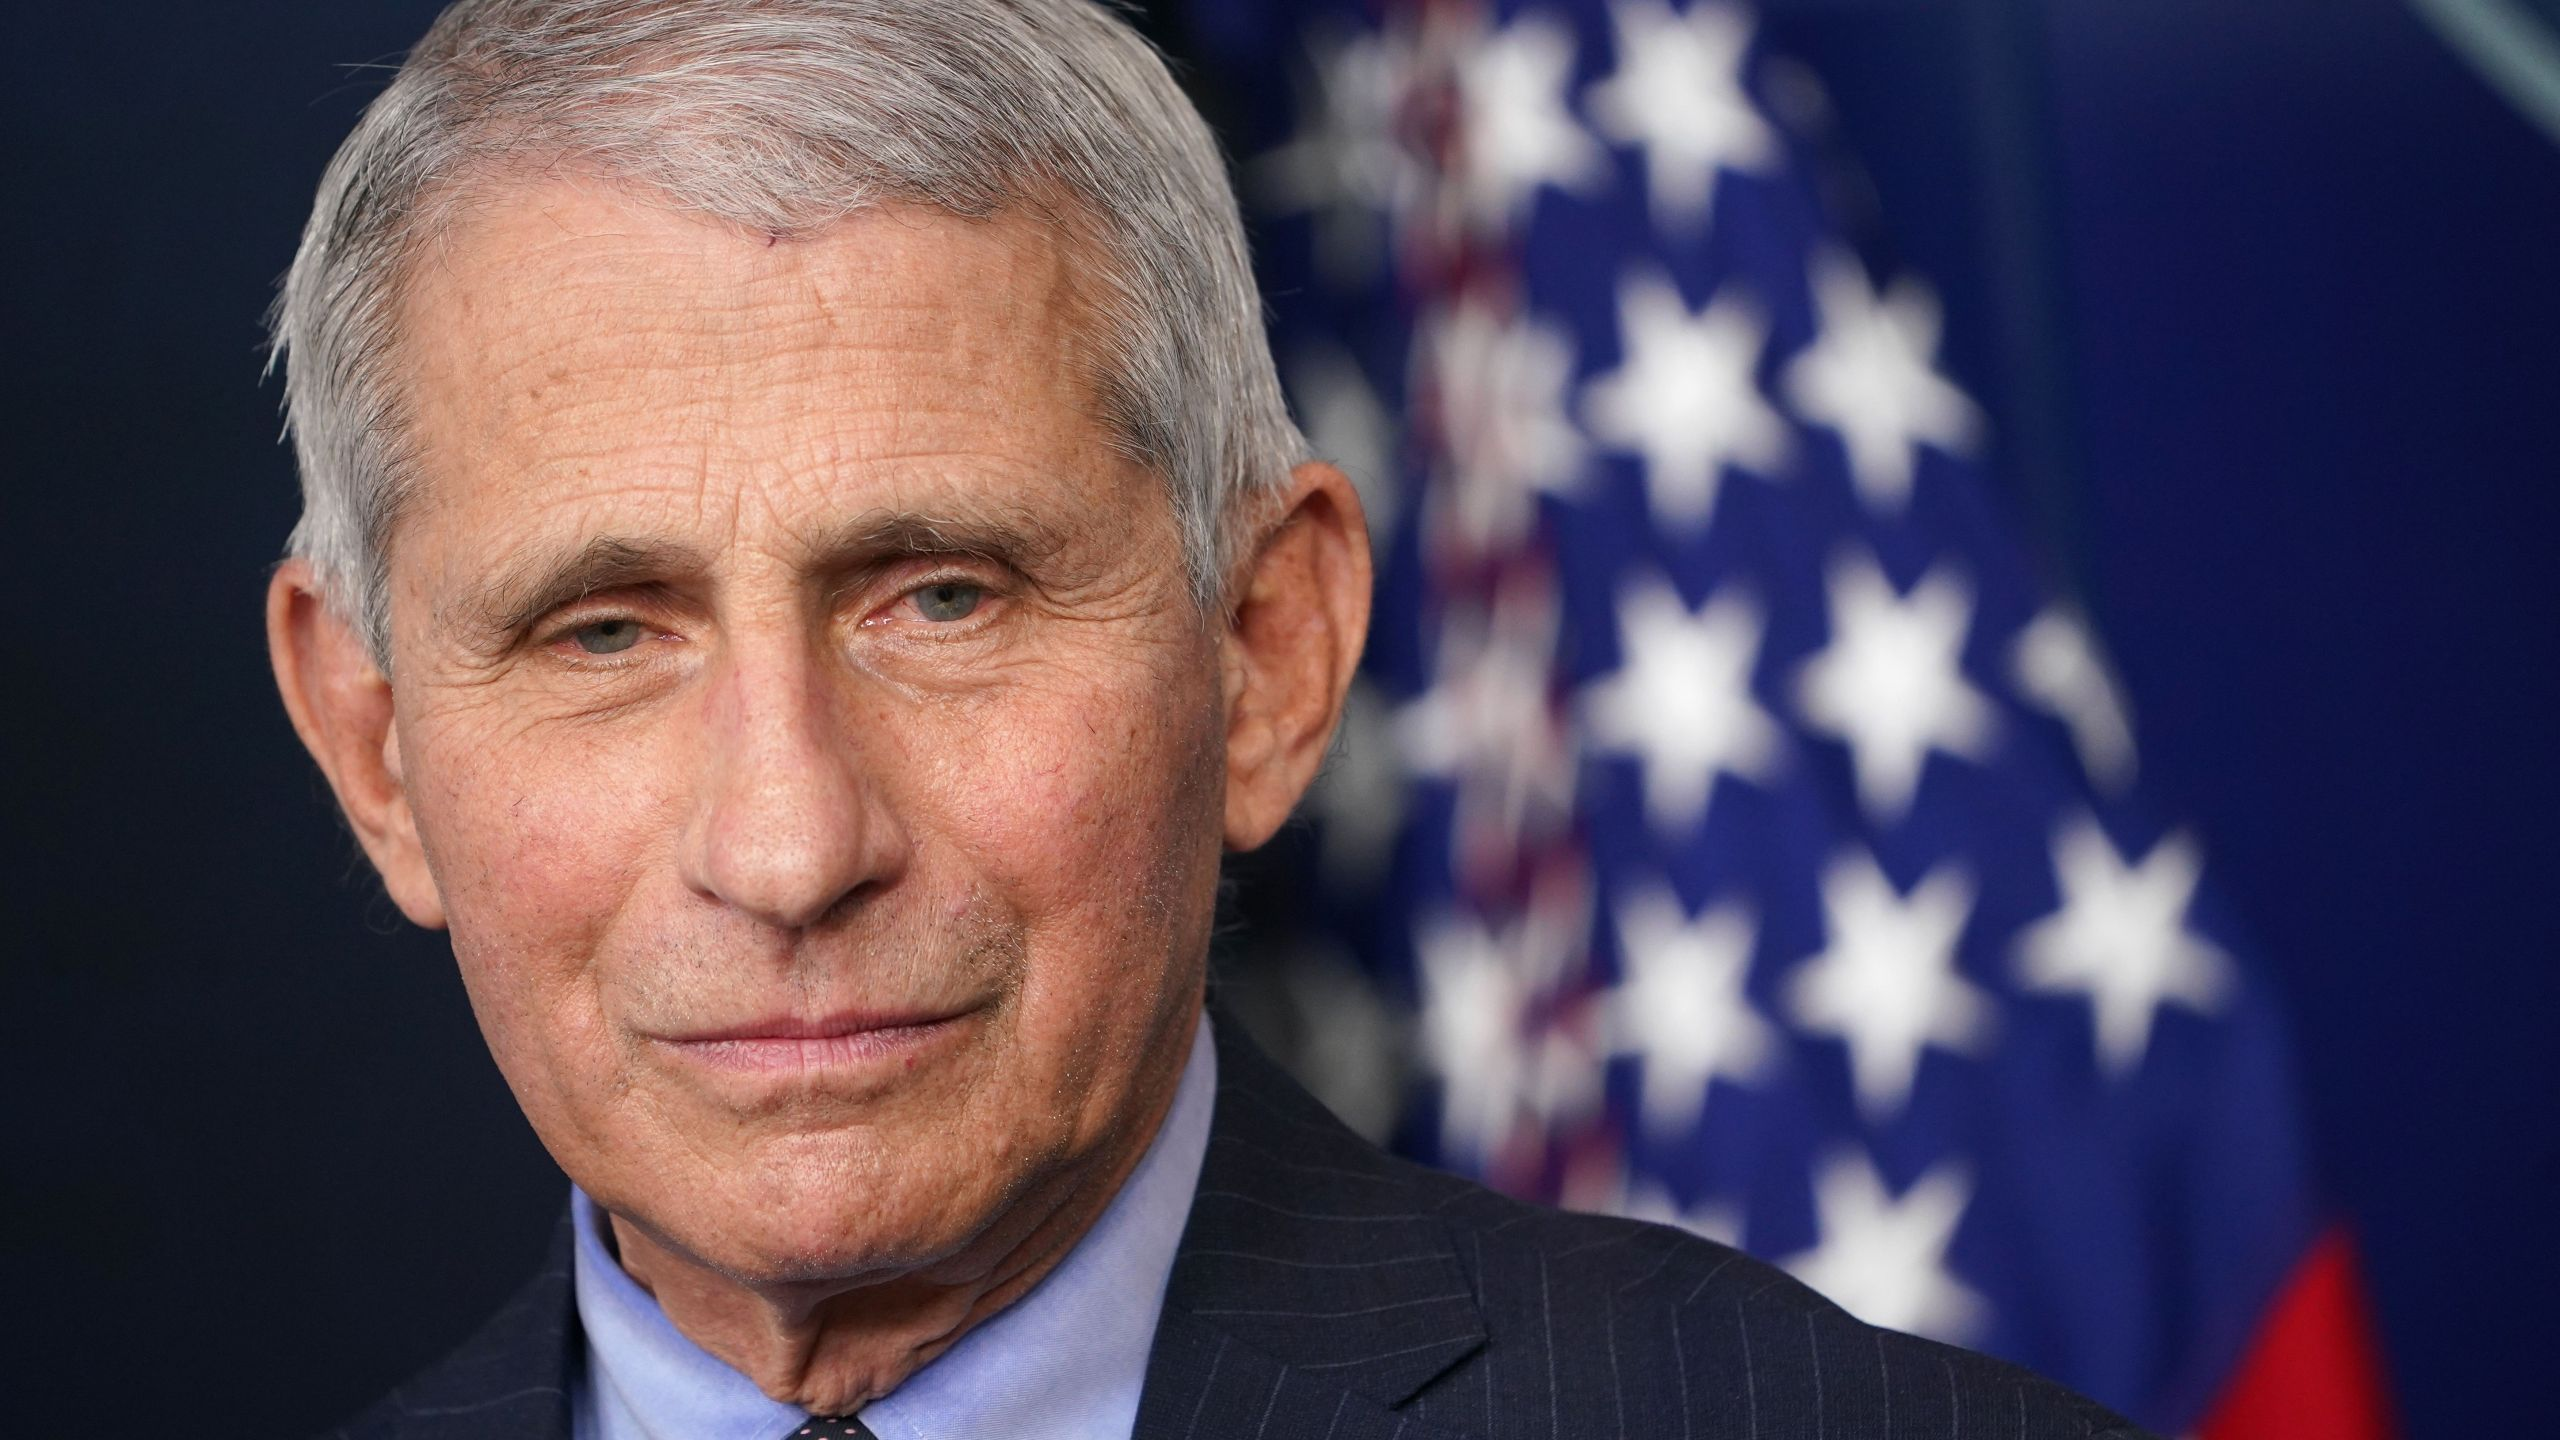 Legislation Introduced To Fire Dr. Fauci And Ban Vaccine Passports